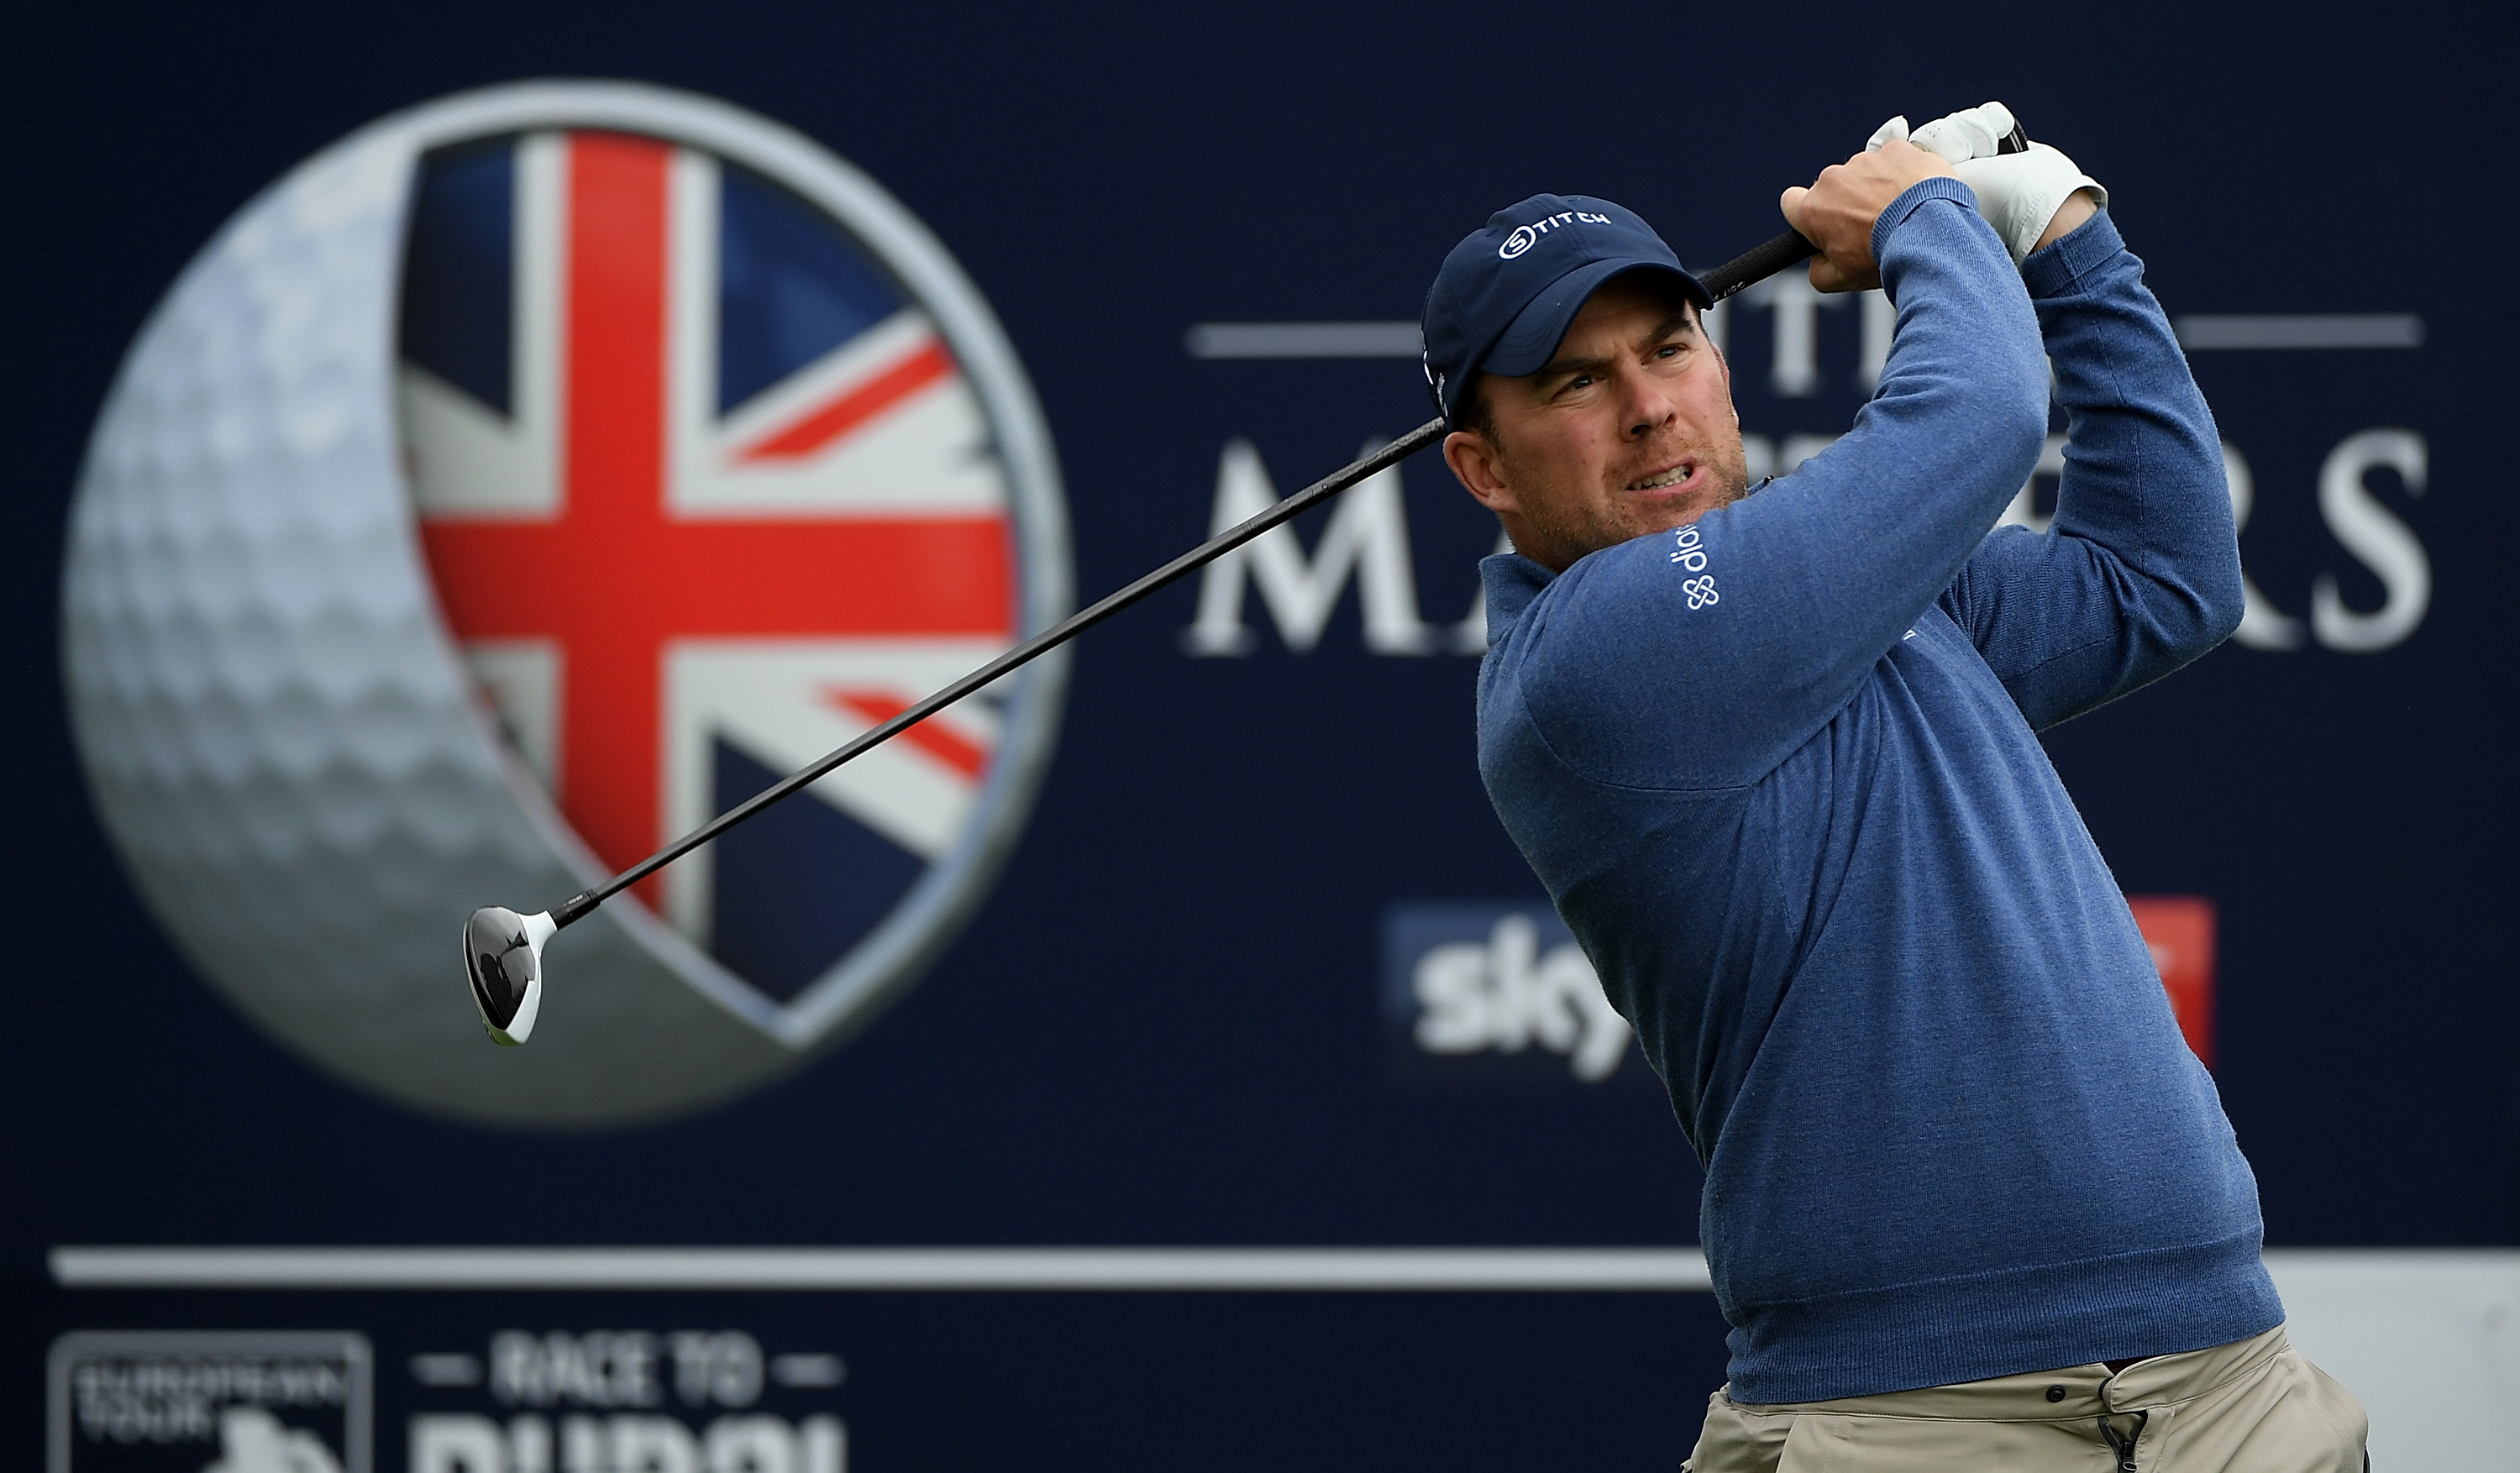 Richie Ramsay feels he's coming into form for the British Masters.